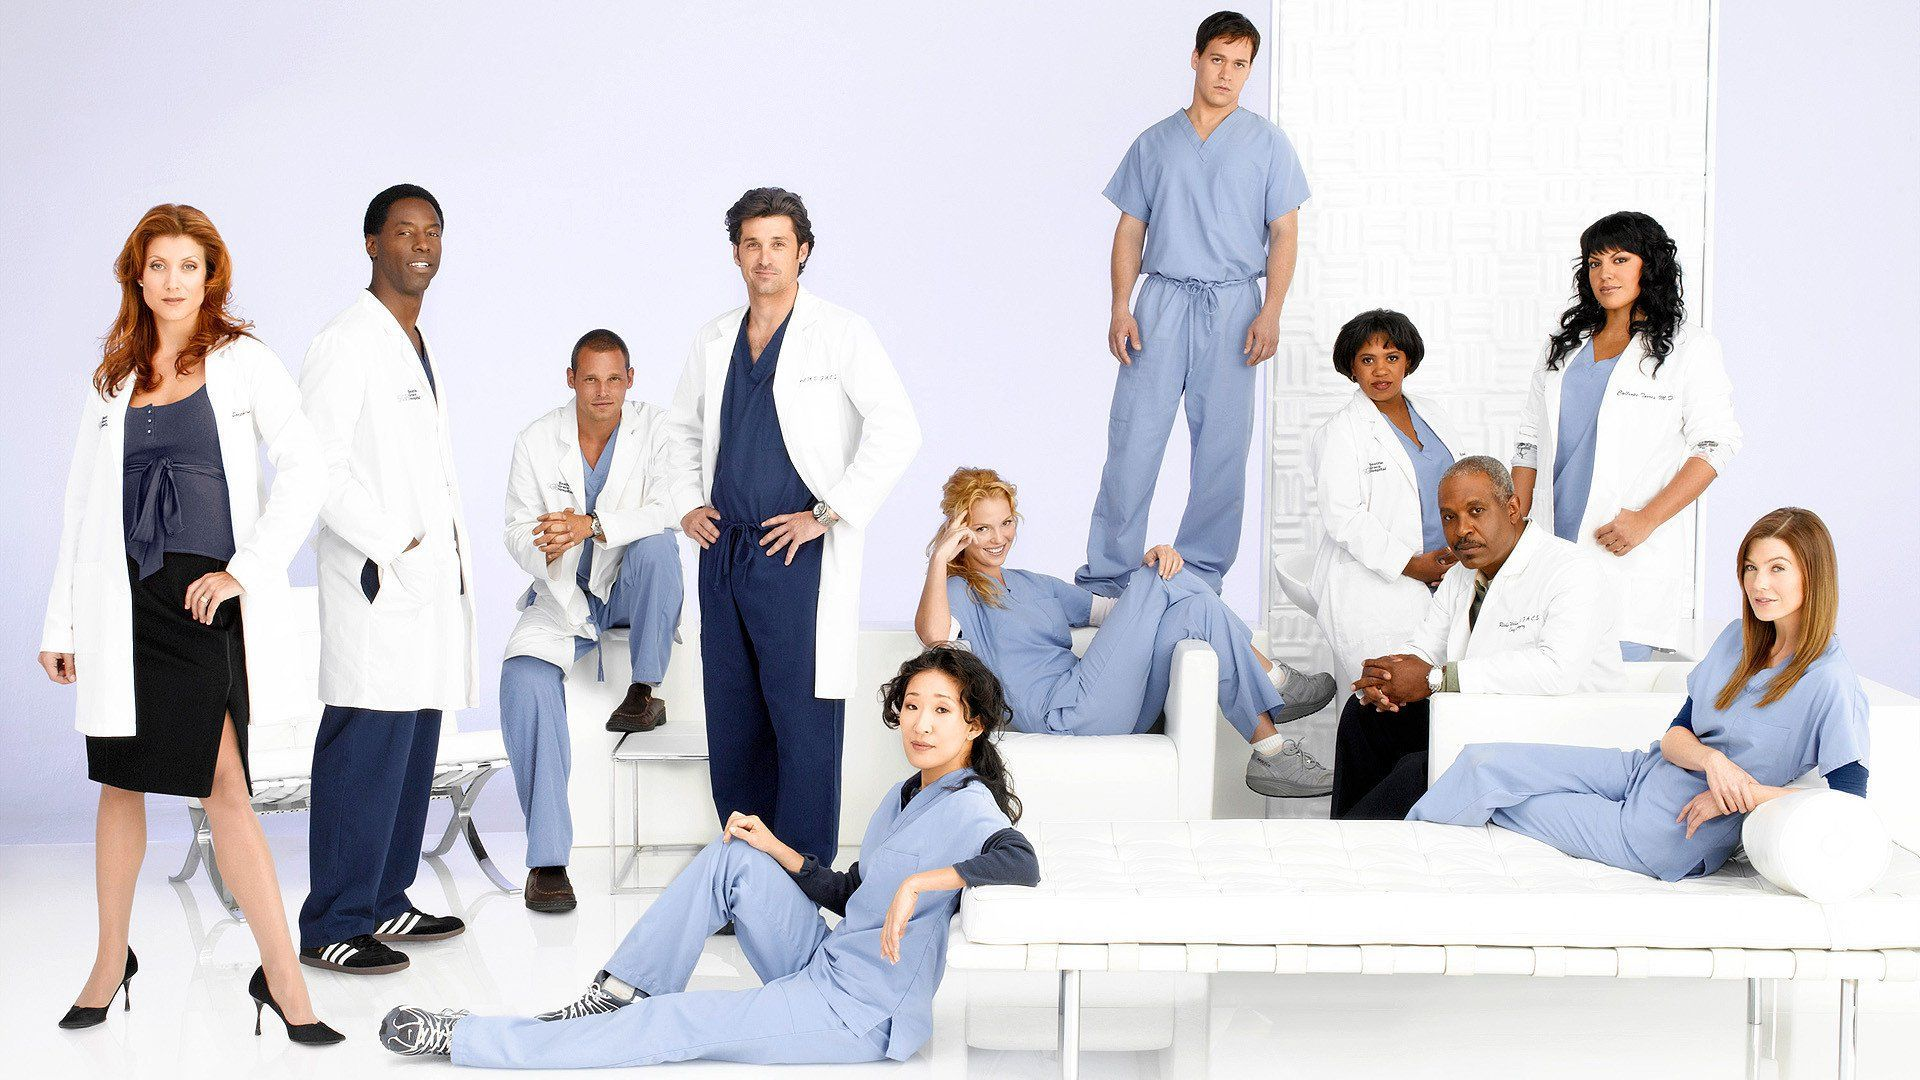 Fullwatch Greys Anatomy Season 14 Episode 10 Personal